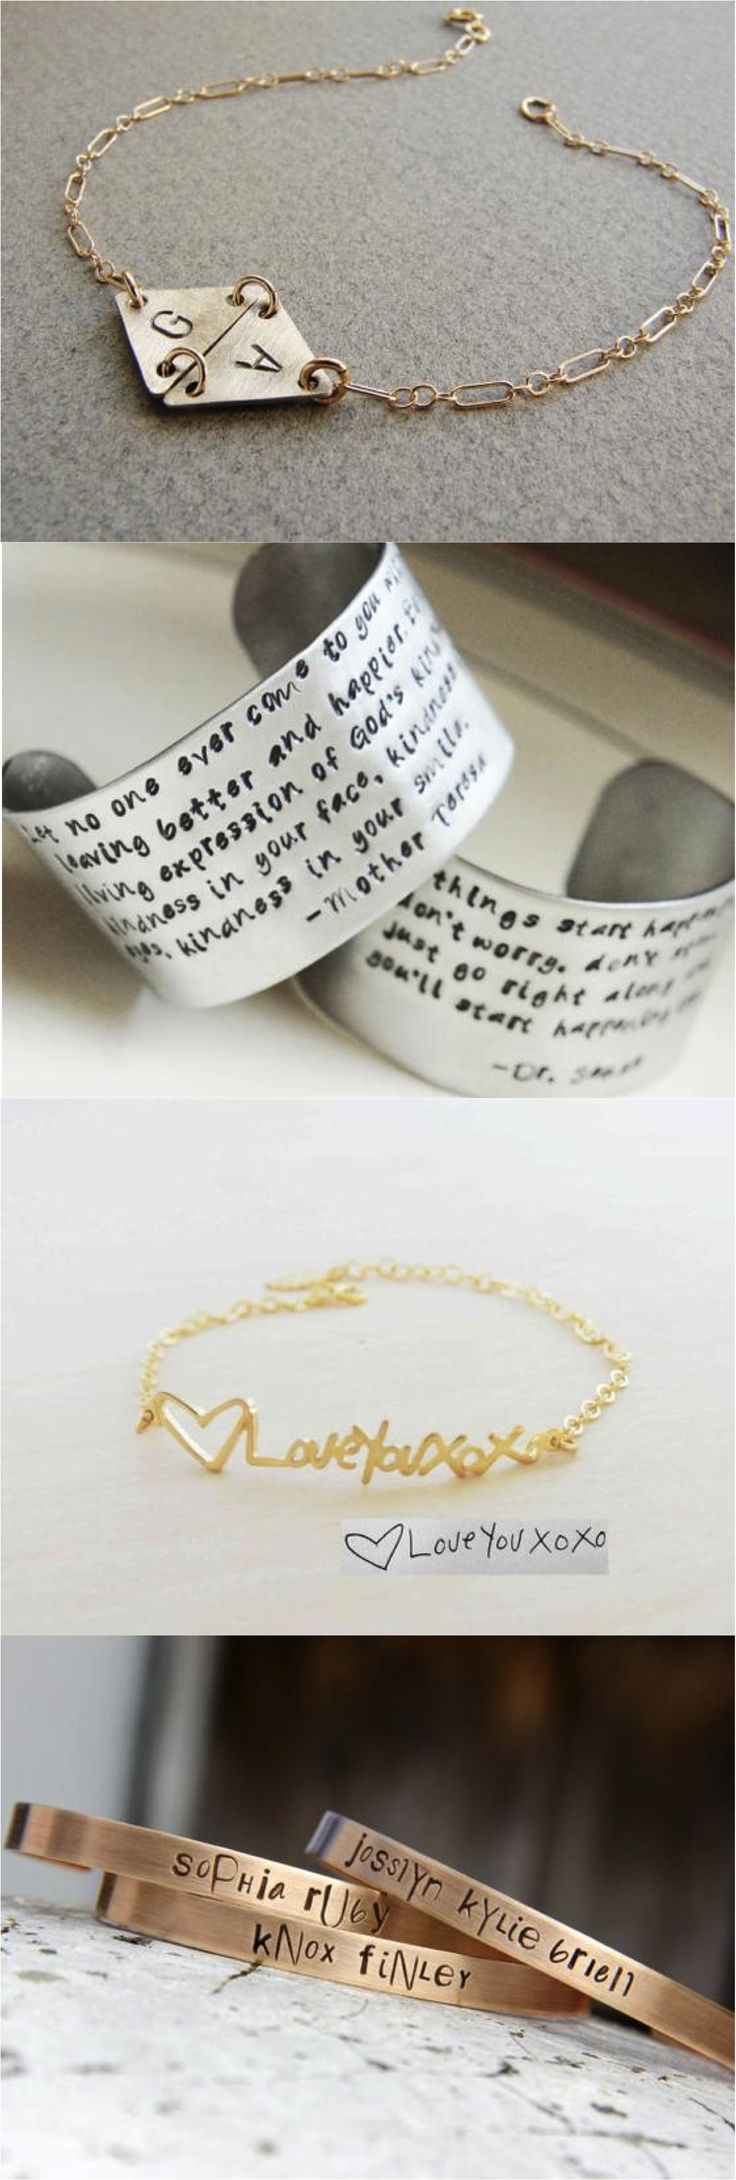 Carry your love around with you at all times with these personalized bracelets. Great gift for someone near & dear!   Made on Hatch.co by independent designers and professional jewelry makers.